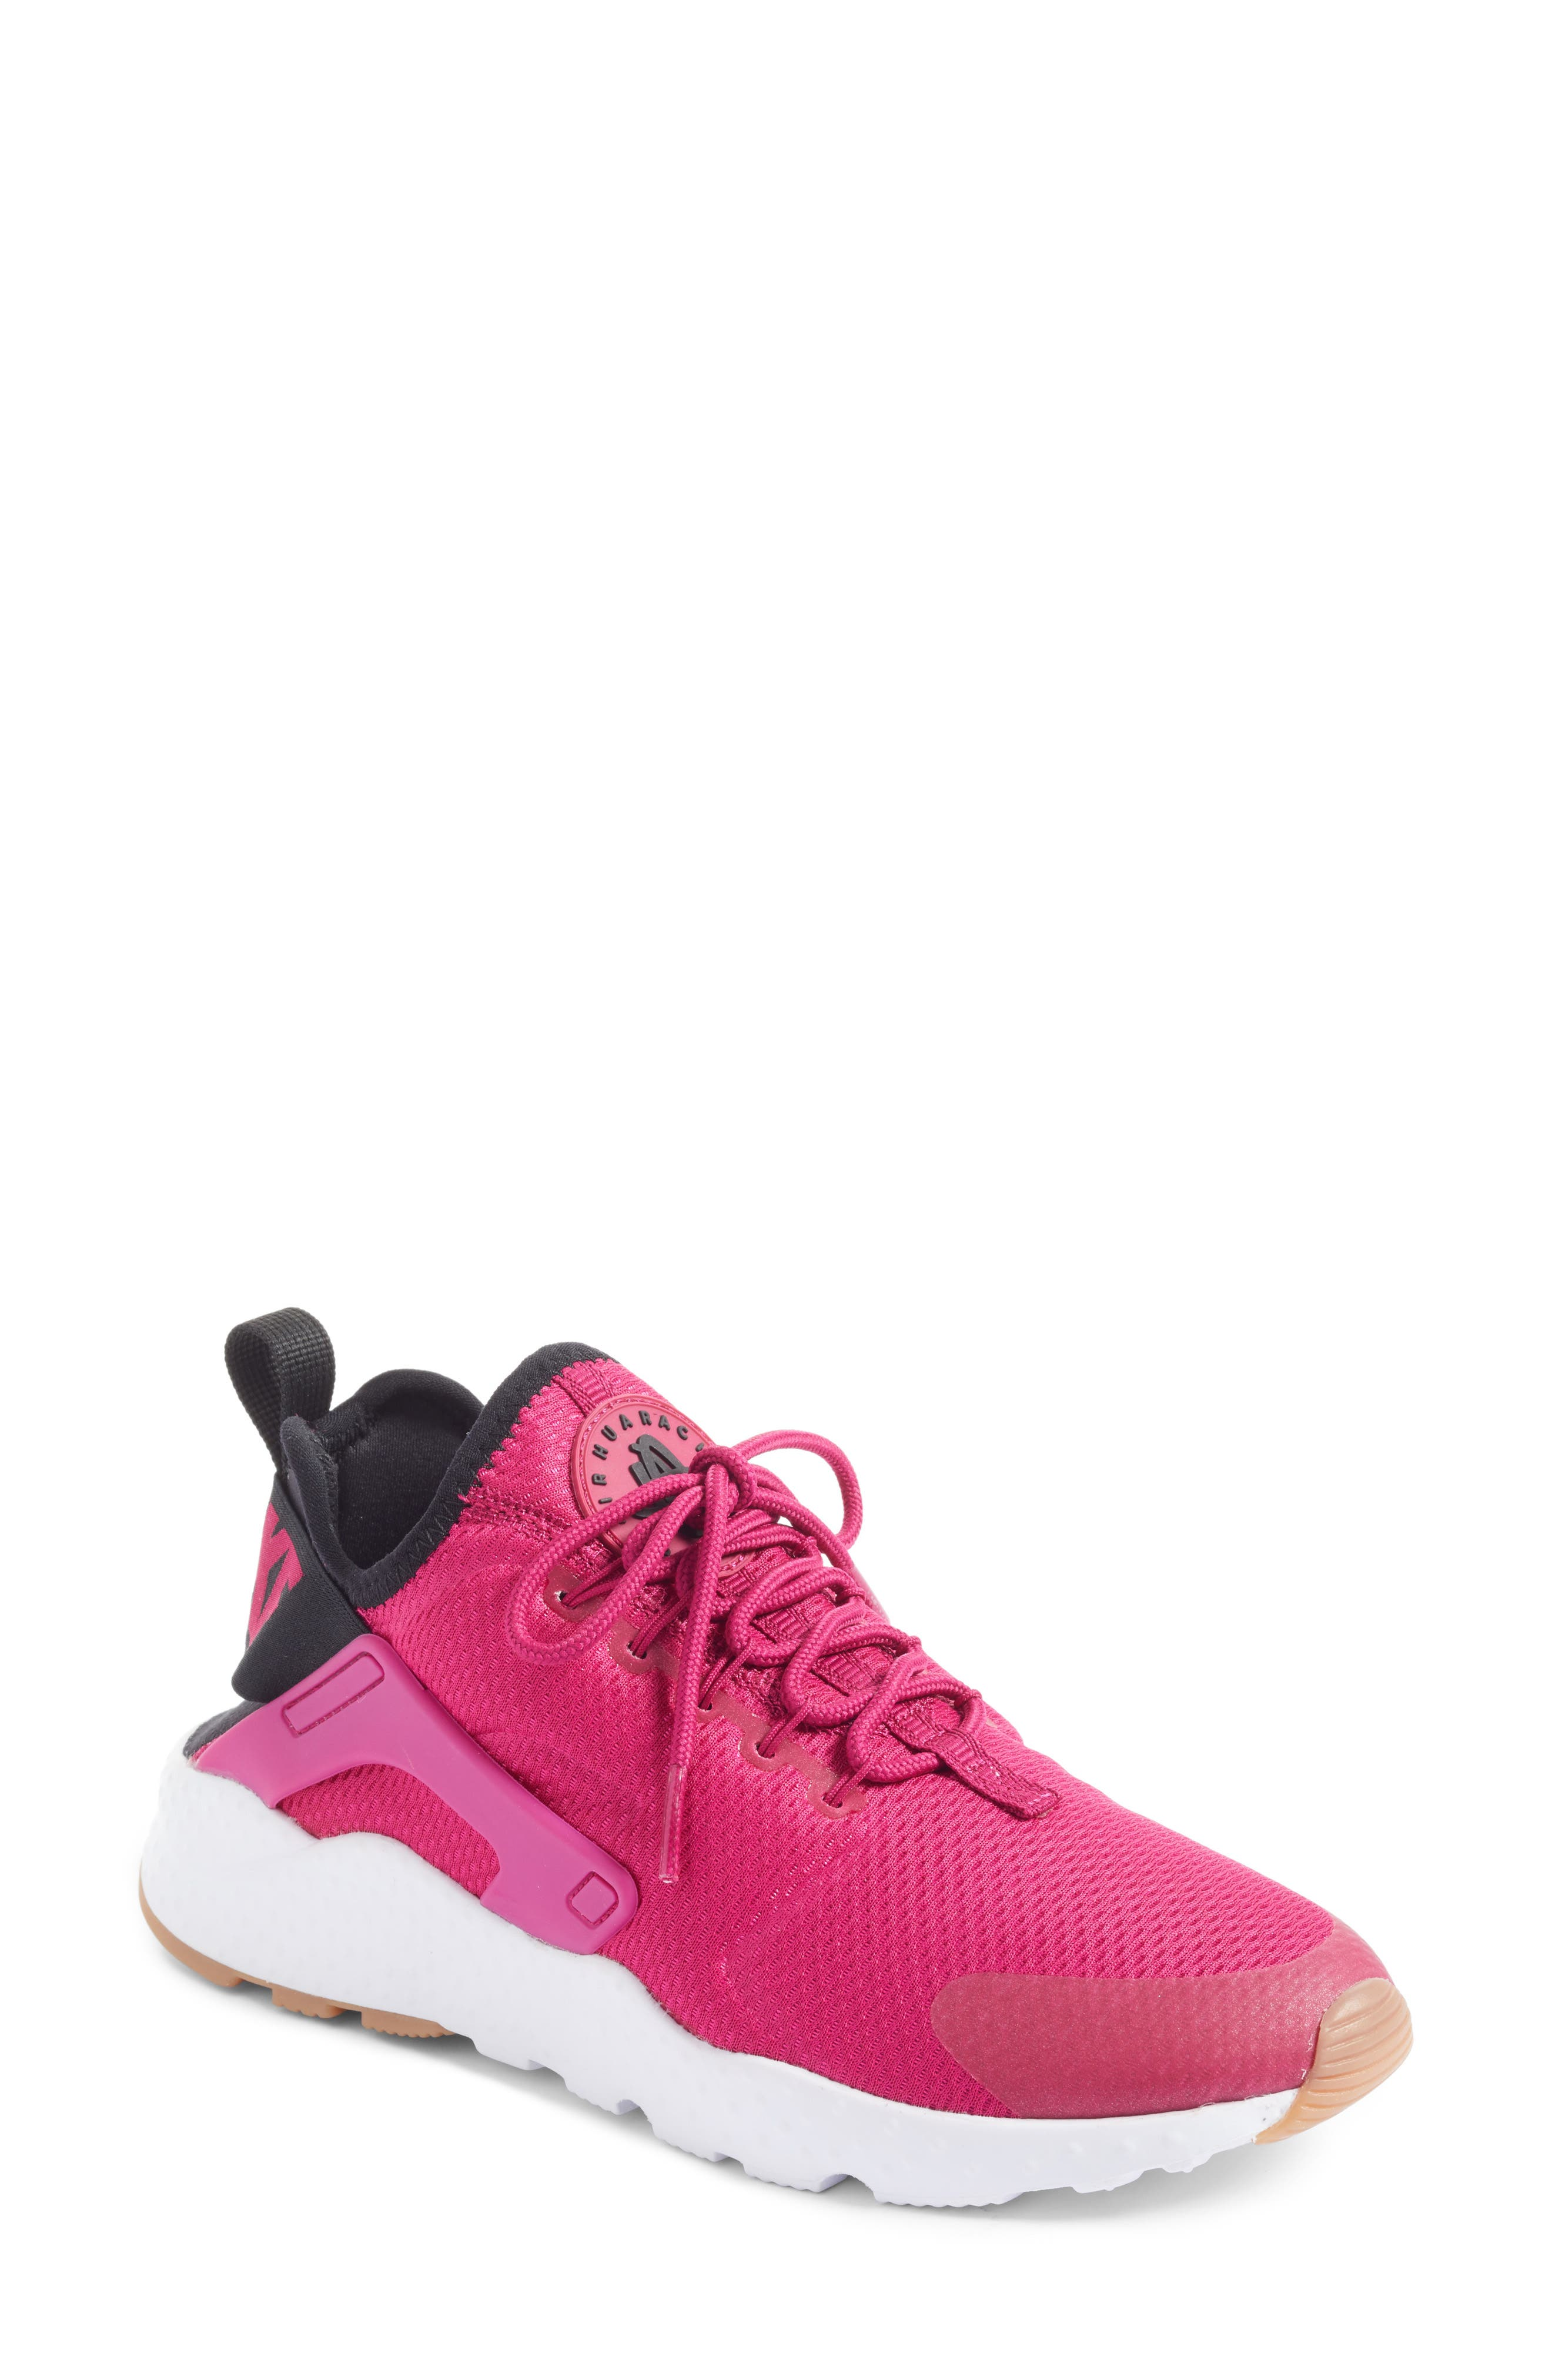 Alternate Image 1 Selected - Nike Air Huarache Sneaker (Women)